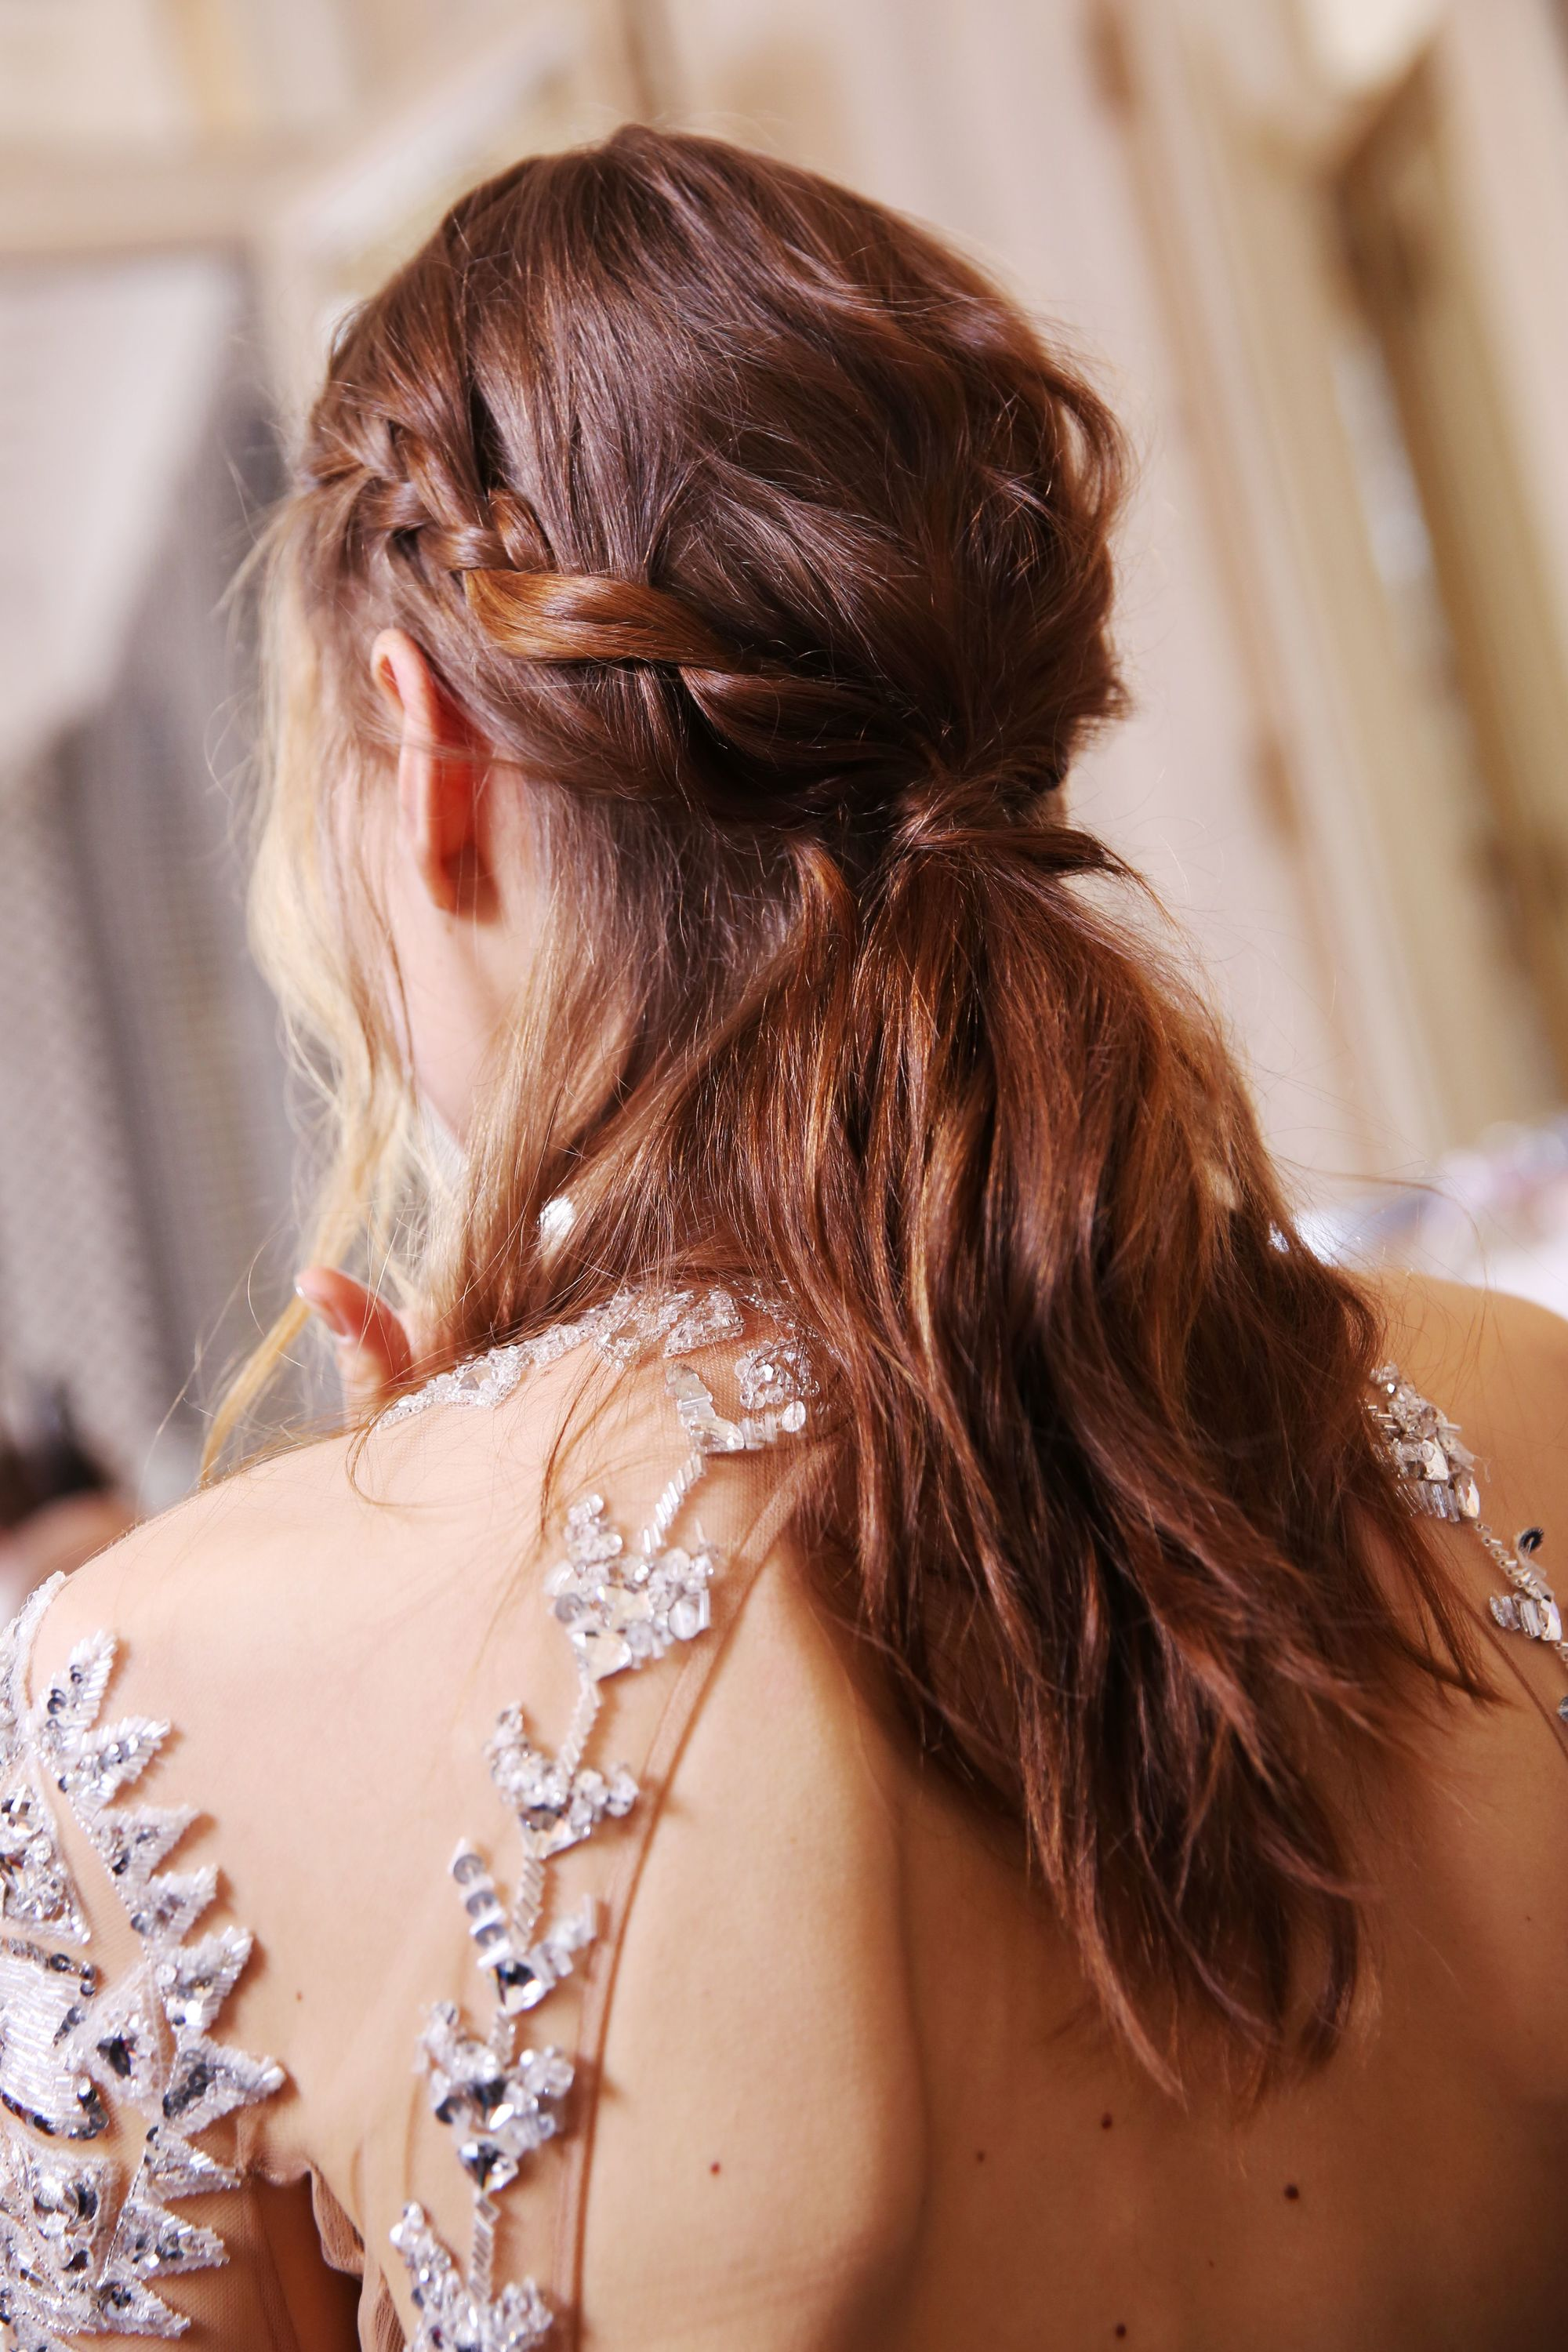 Brown hair in braided ponytail